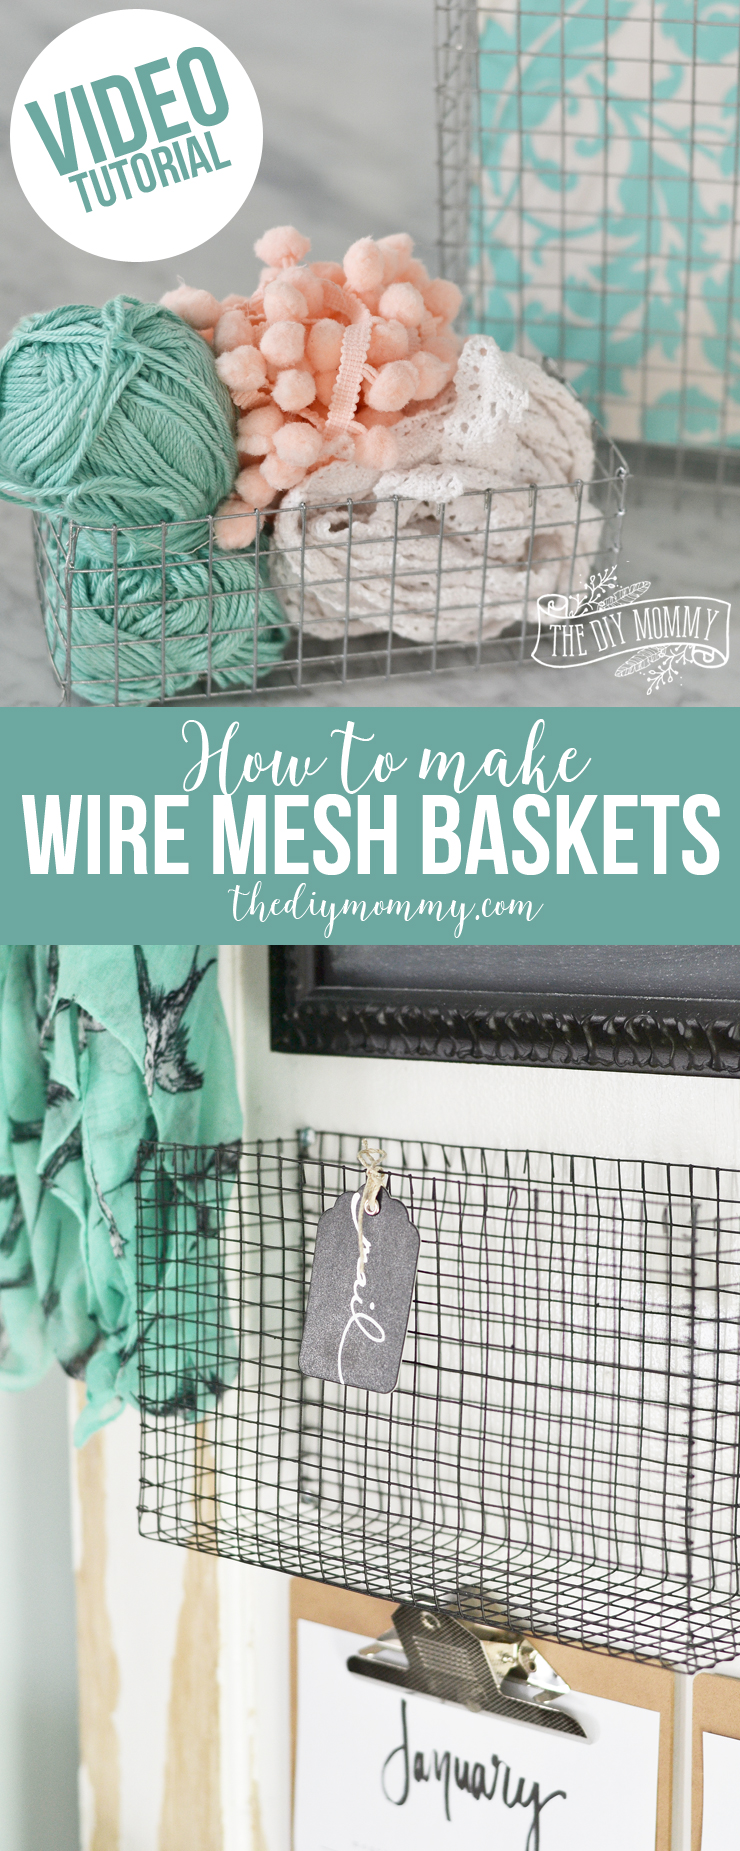 Make Wire Mesh Baskets Of Any Size Video The Diy Mommy